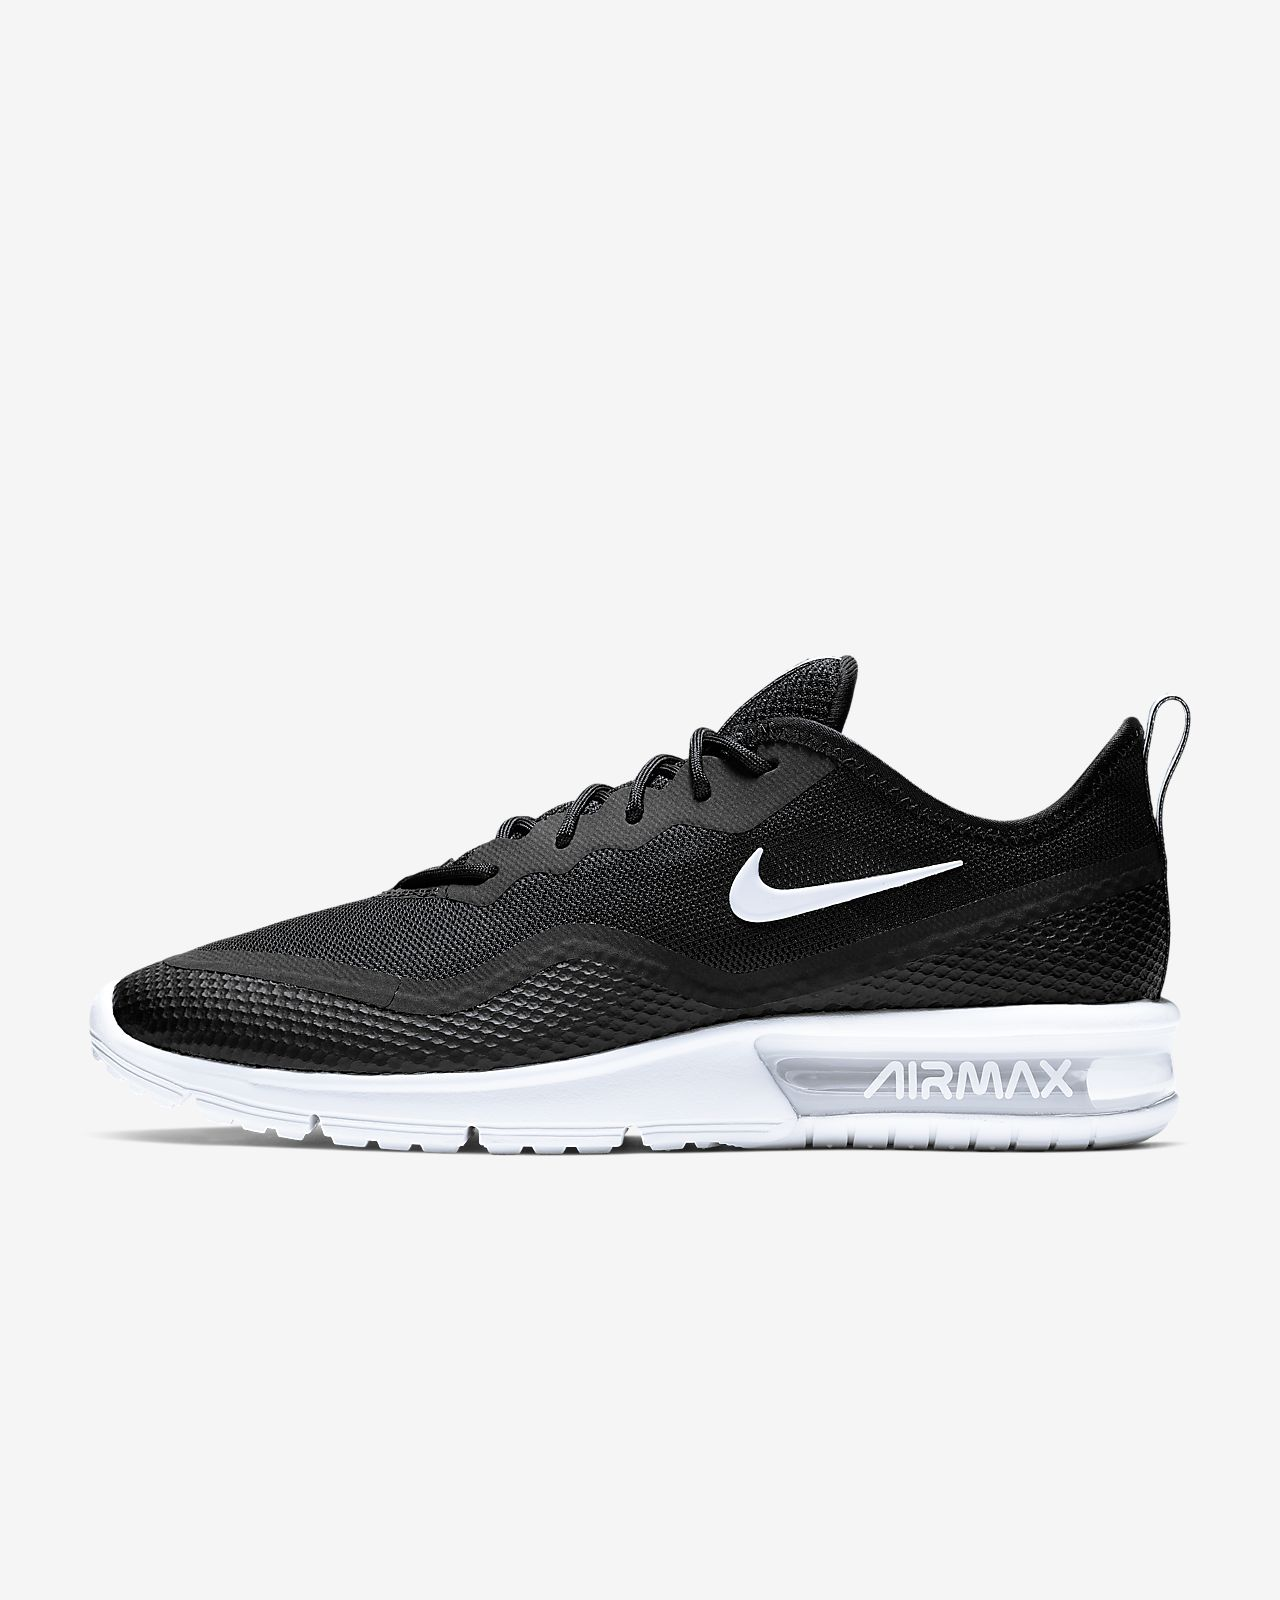 wholesale dealer b97bf 15aa4 ... Nike Air Max Sequent 4.5 Herren-Laufschuh